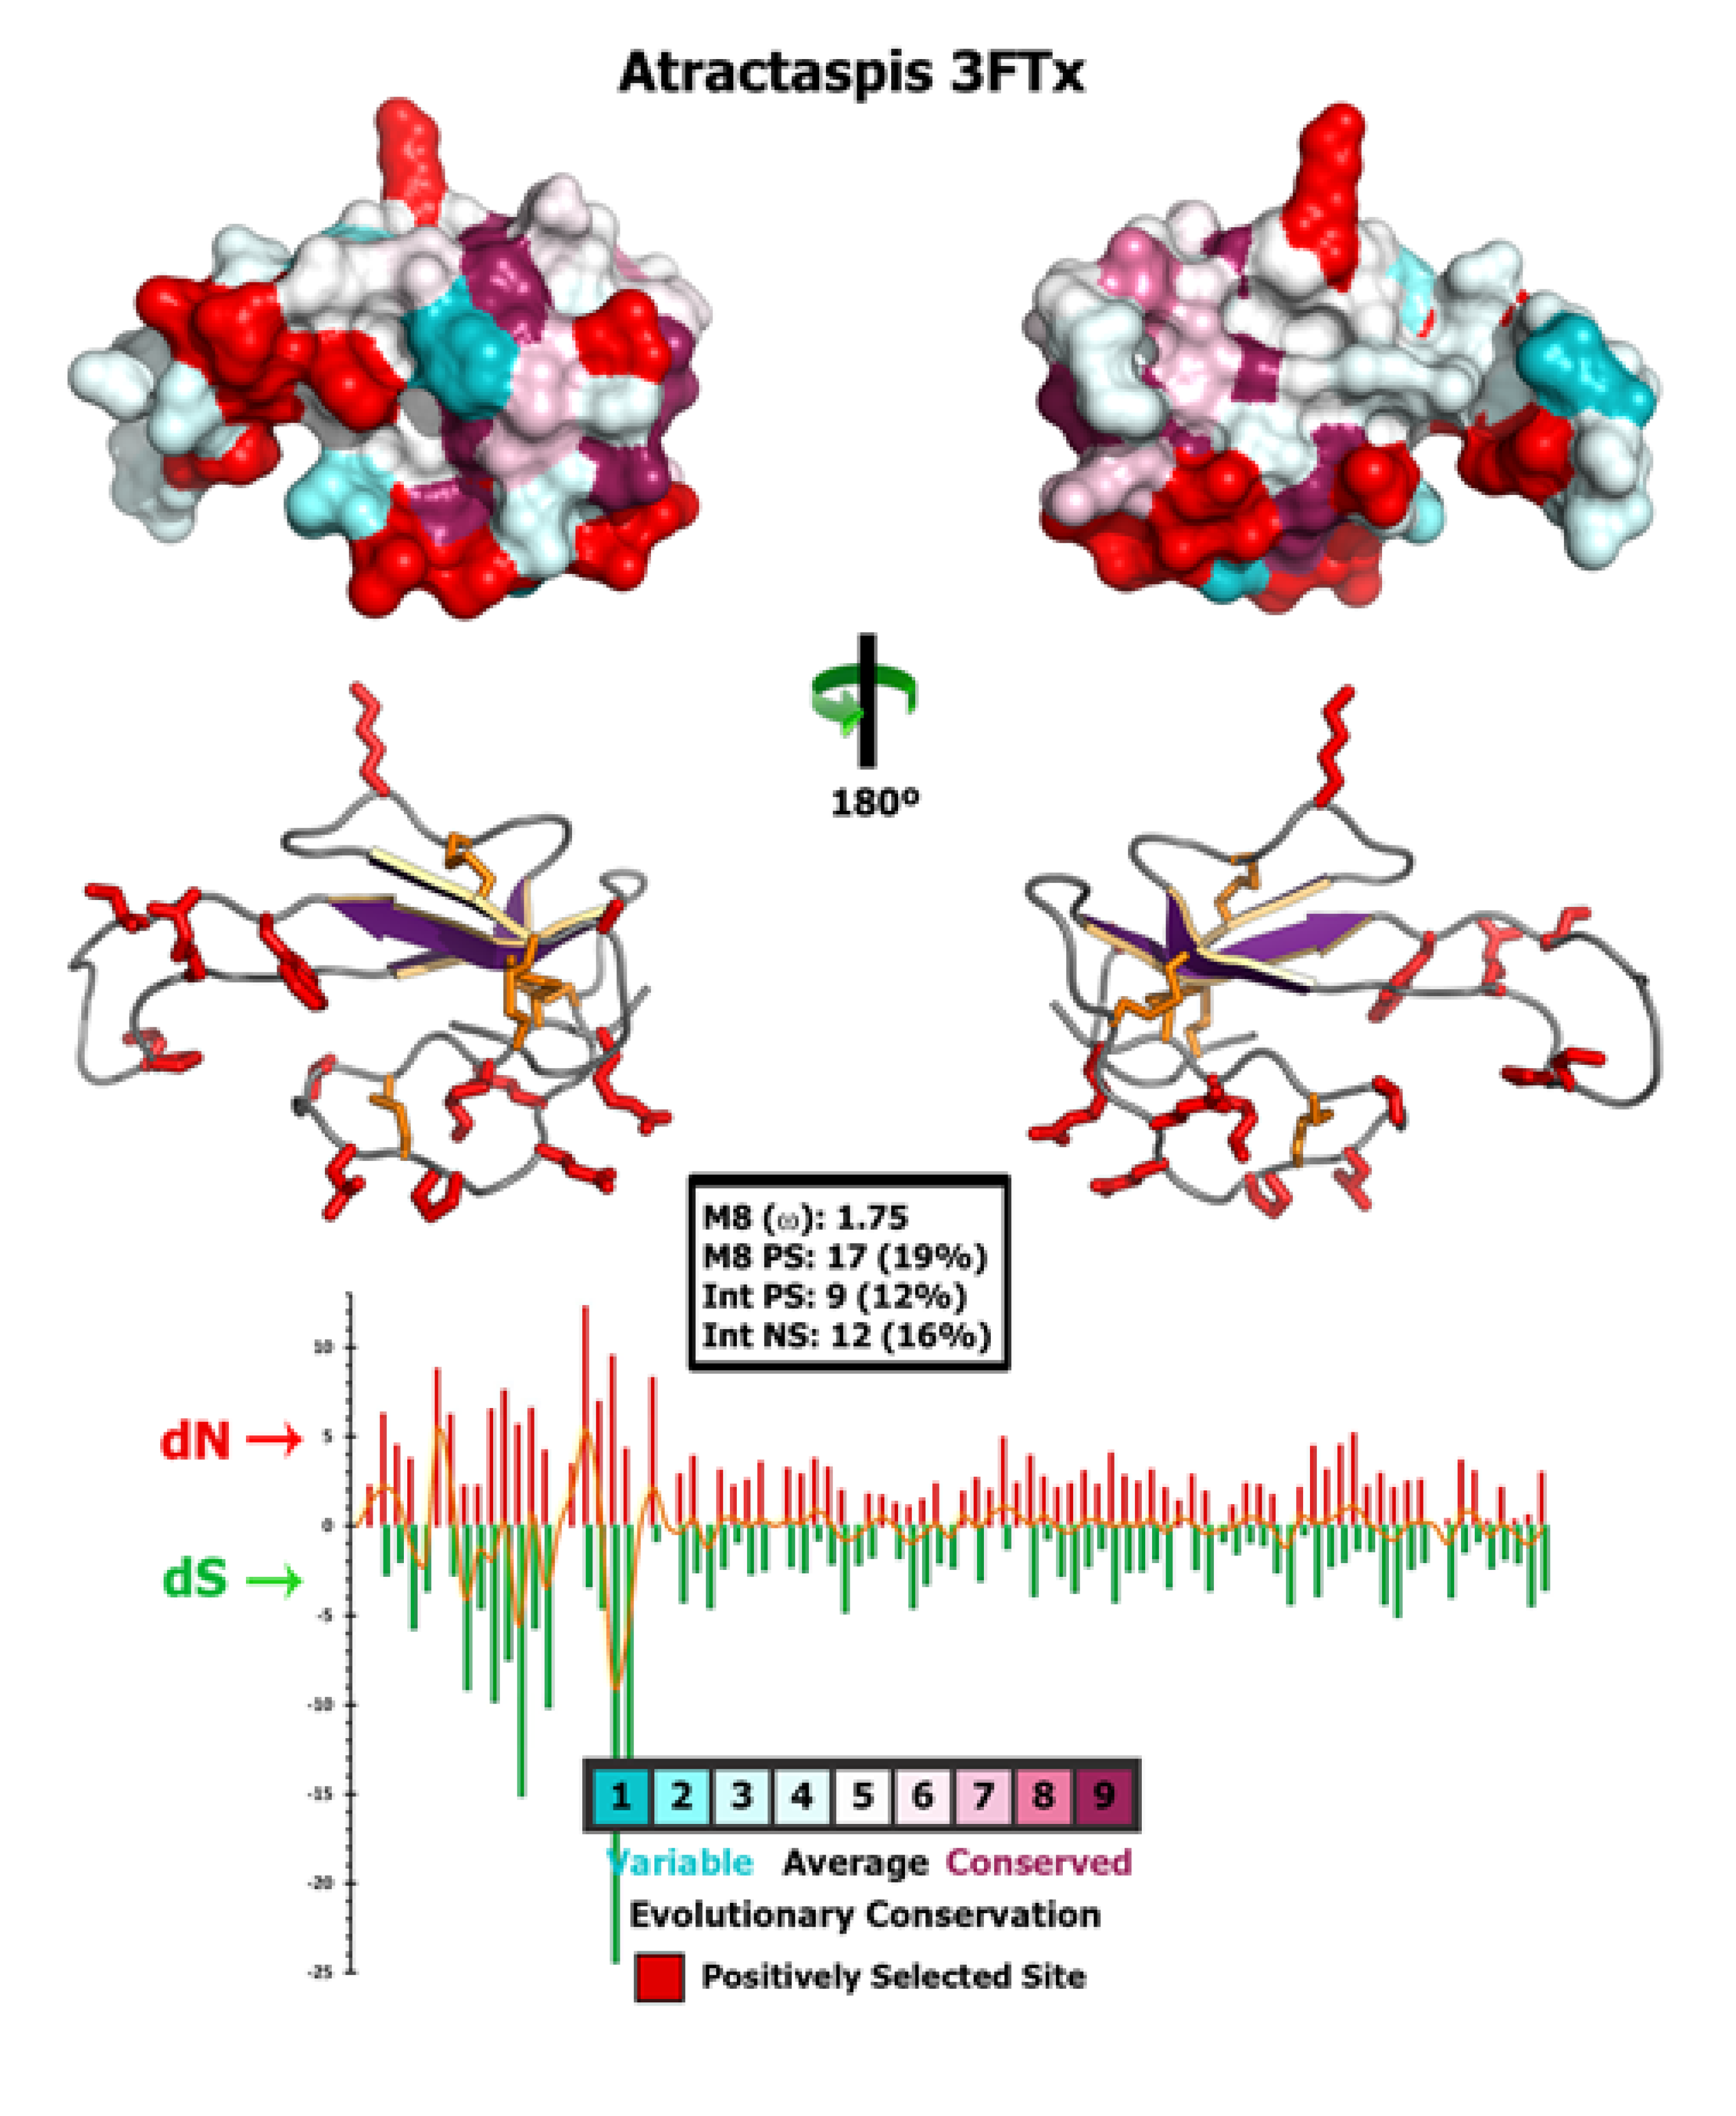 an analysis of positive darwinian selection on proteins The divergence of female reproductive proteins has never been  here we  present an analysis suggesting that positive darwinian selection promotes the.